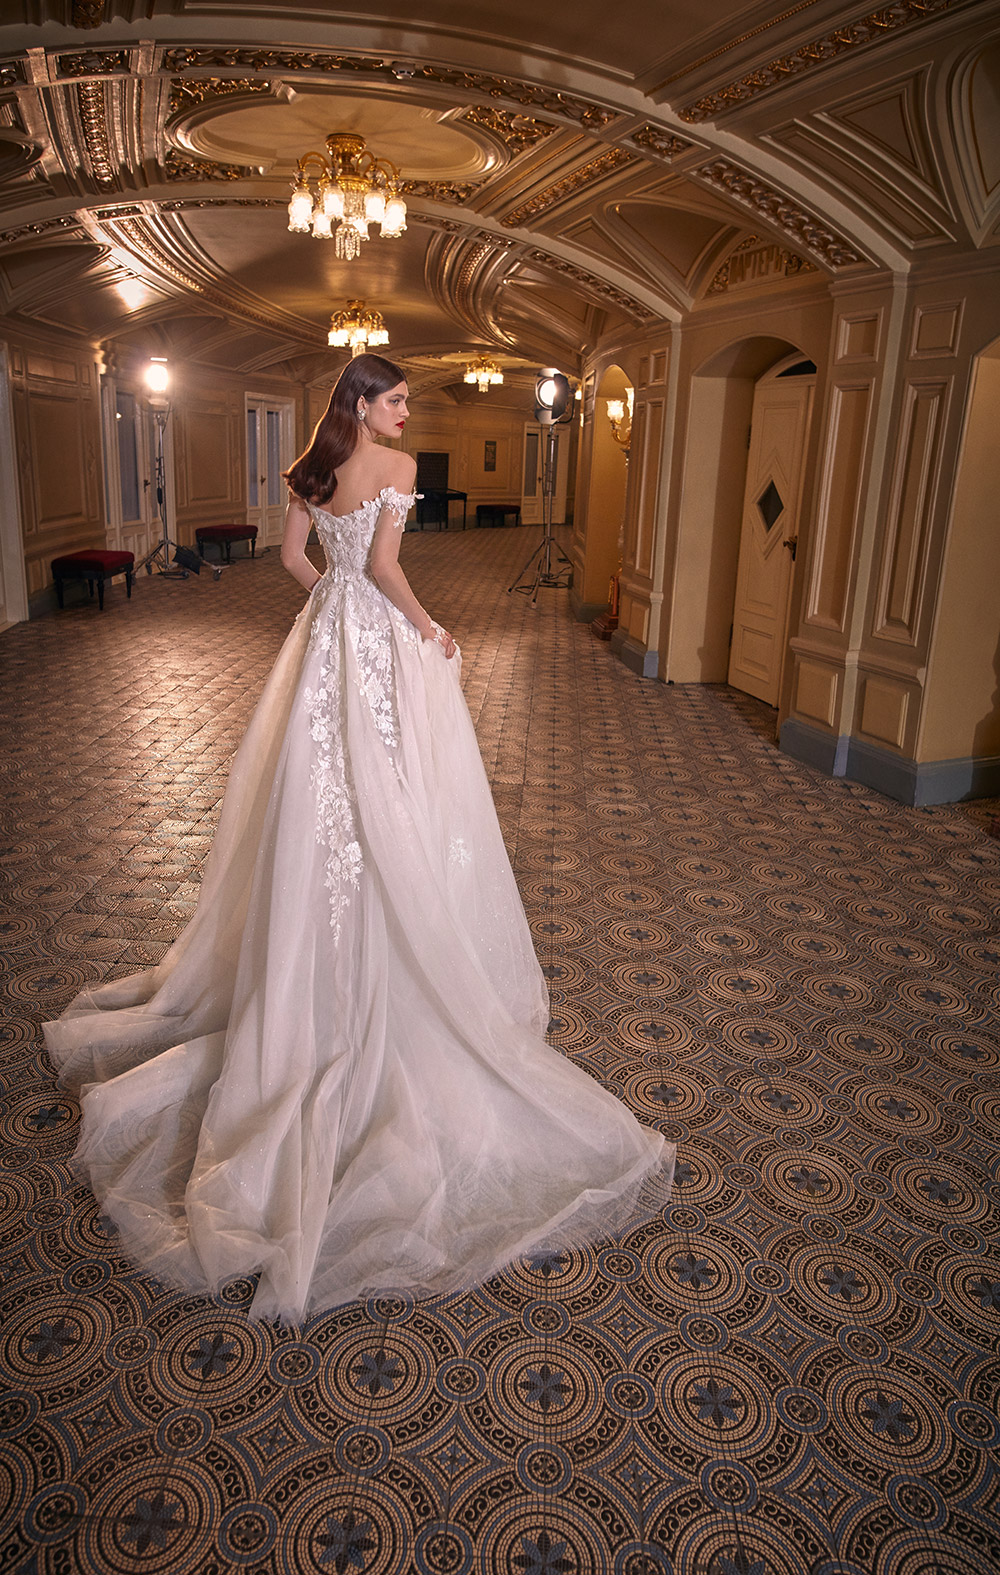 Lynn - Galia Lahav Couture Spring 2020 Collection. www.theweddingnotebook.com